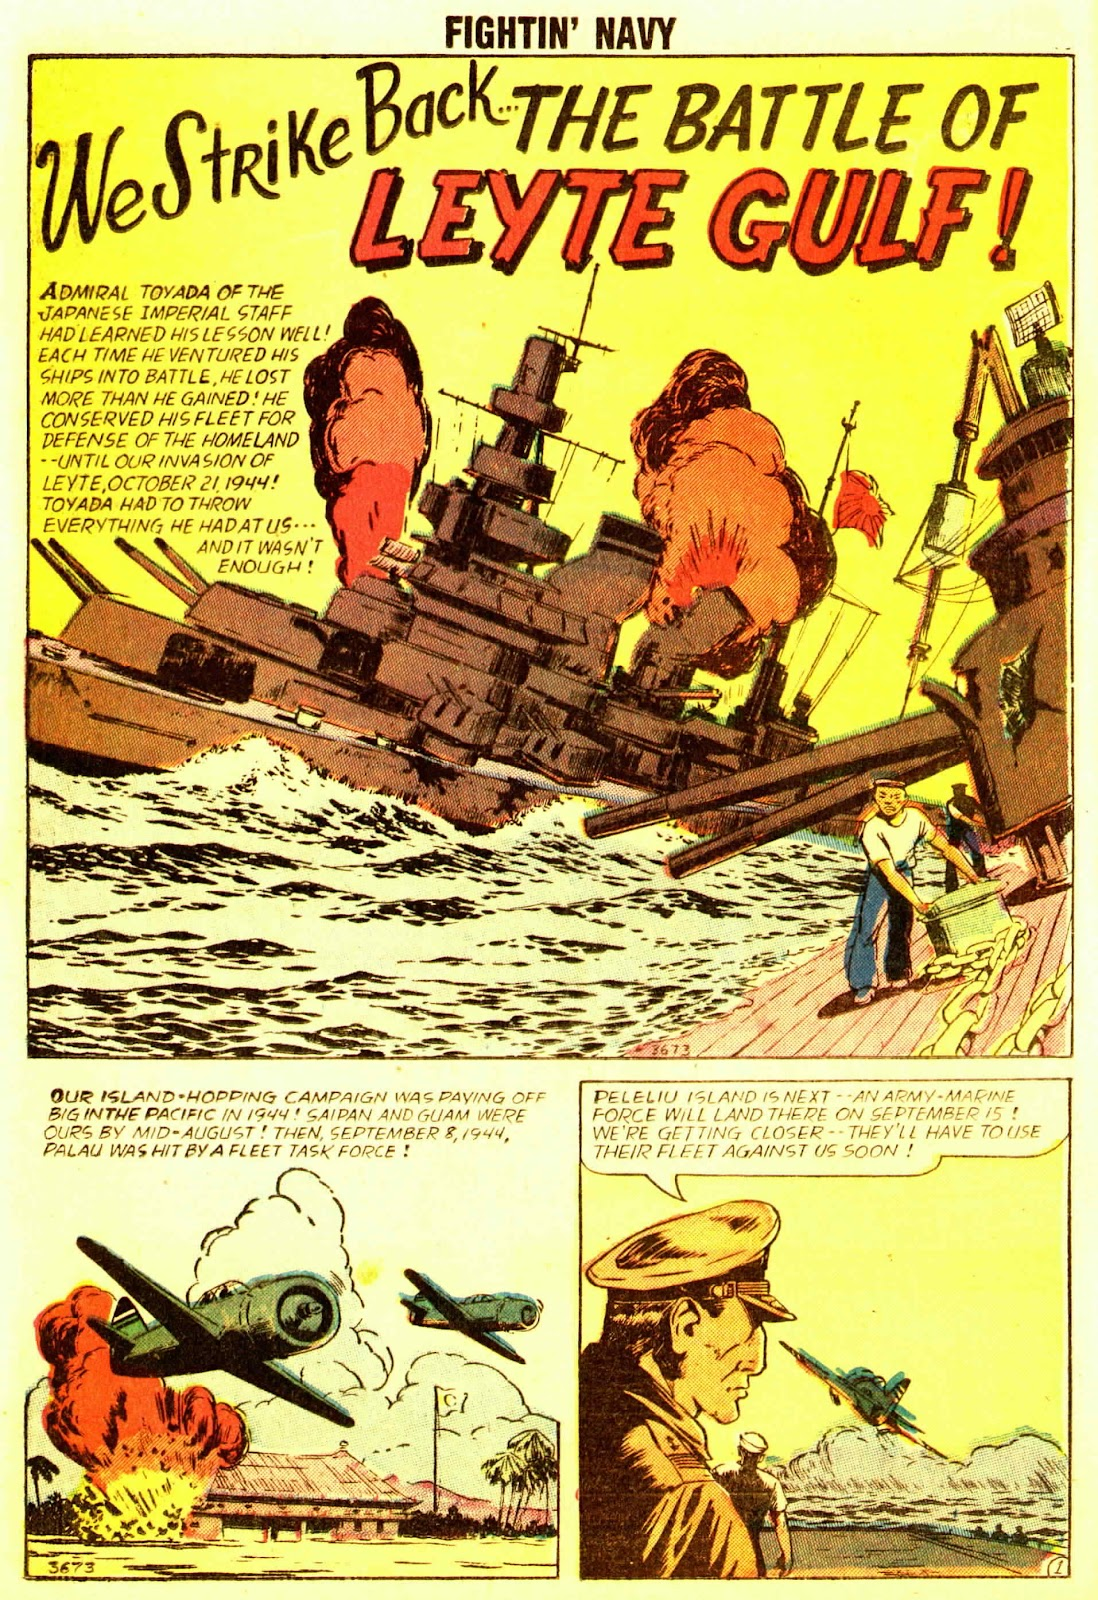 Read online Fightin' Navy comic -  Issue #83 - 20